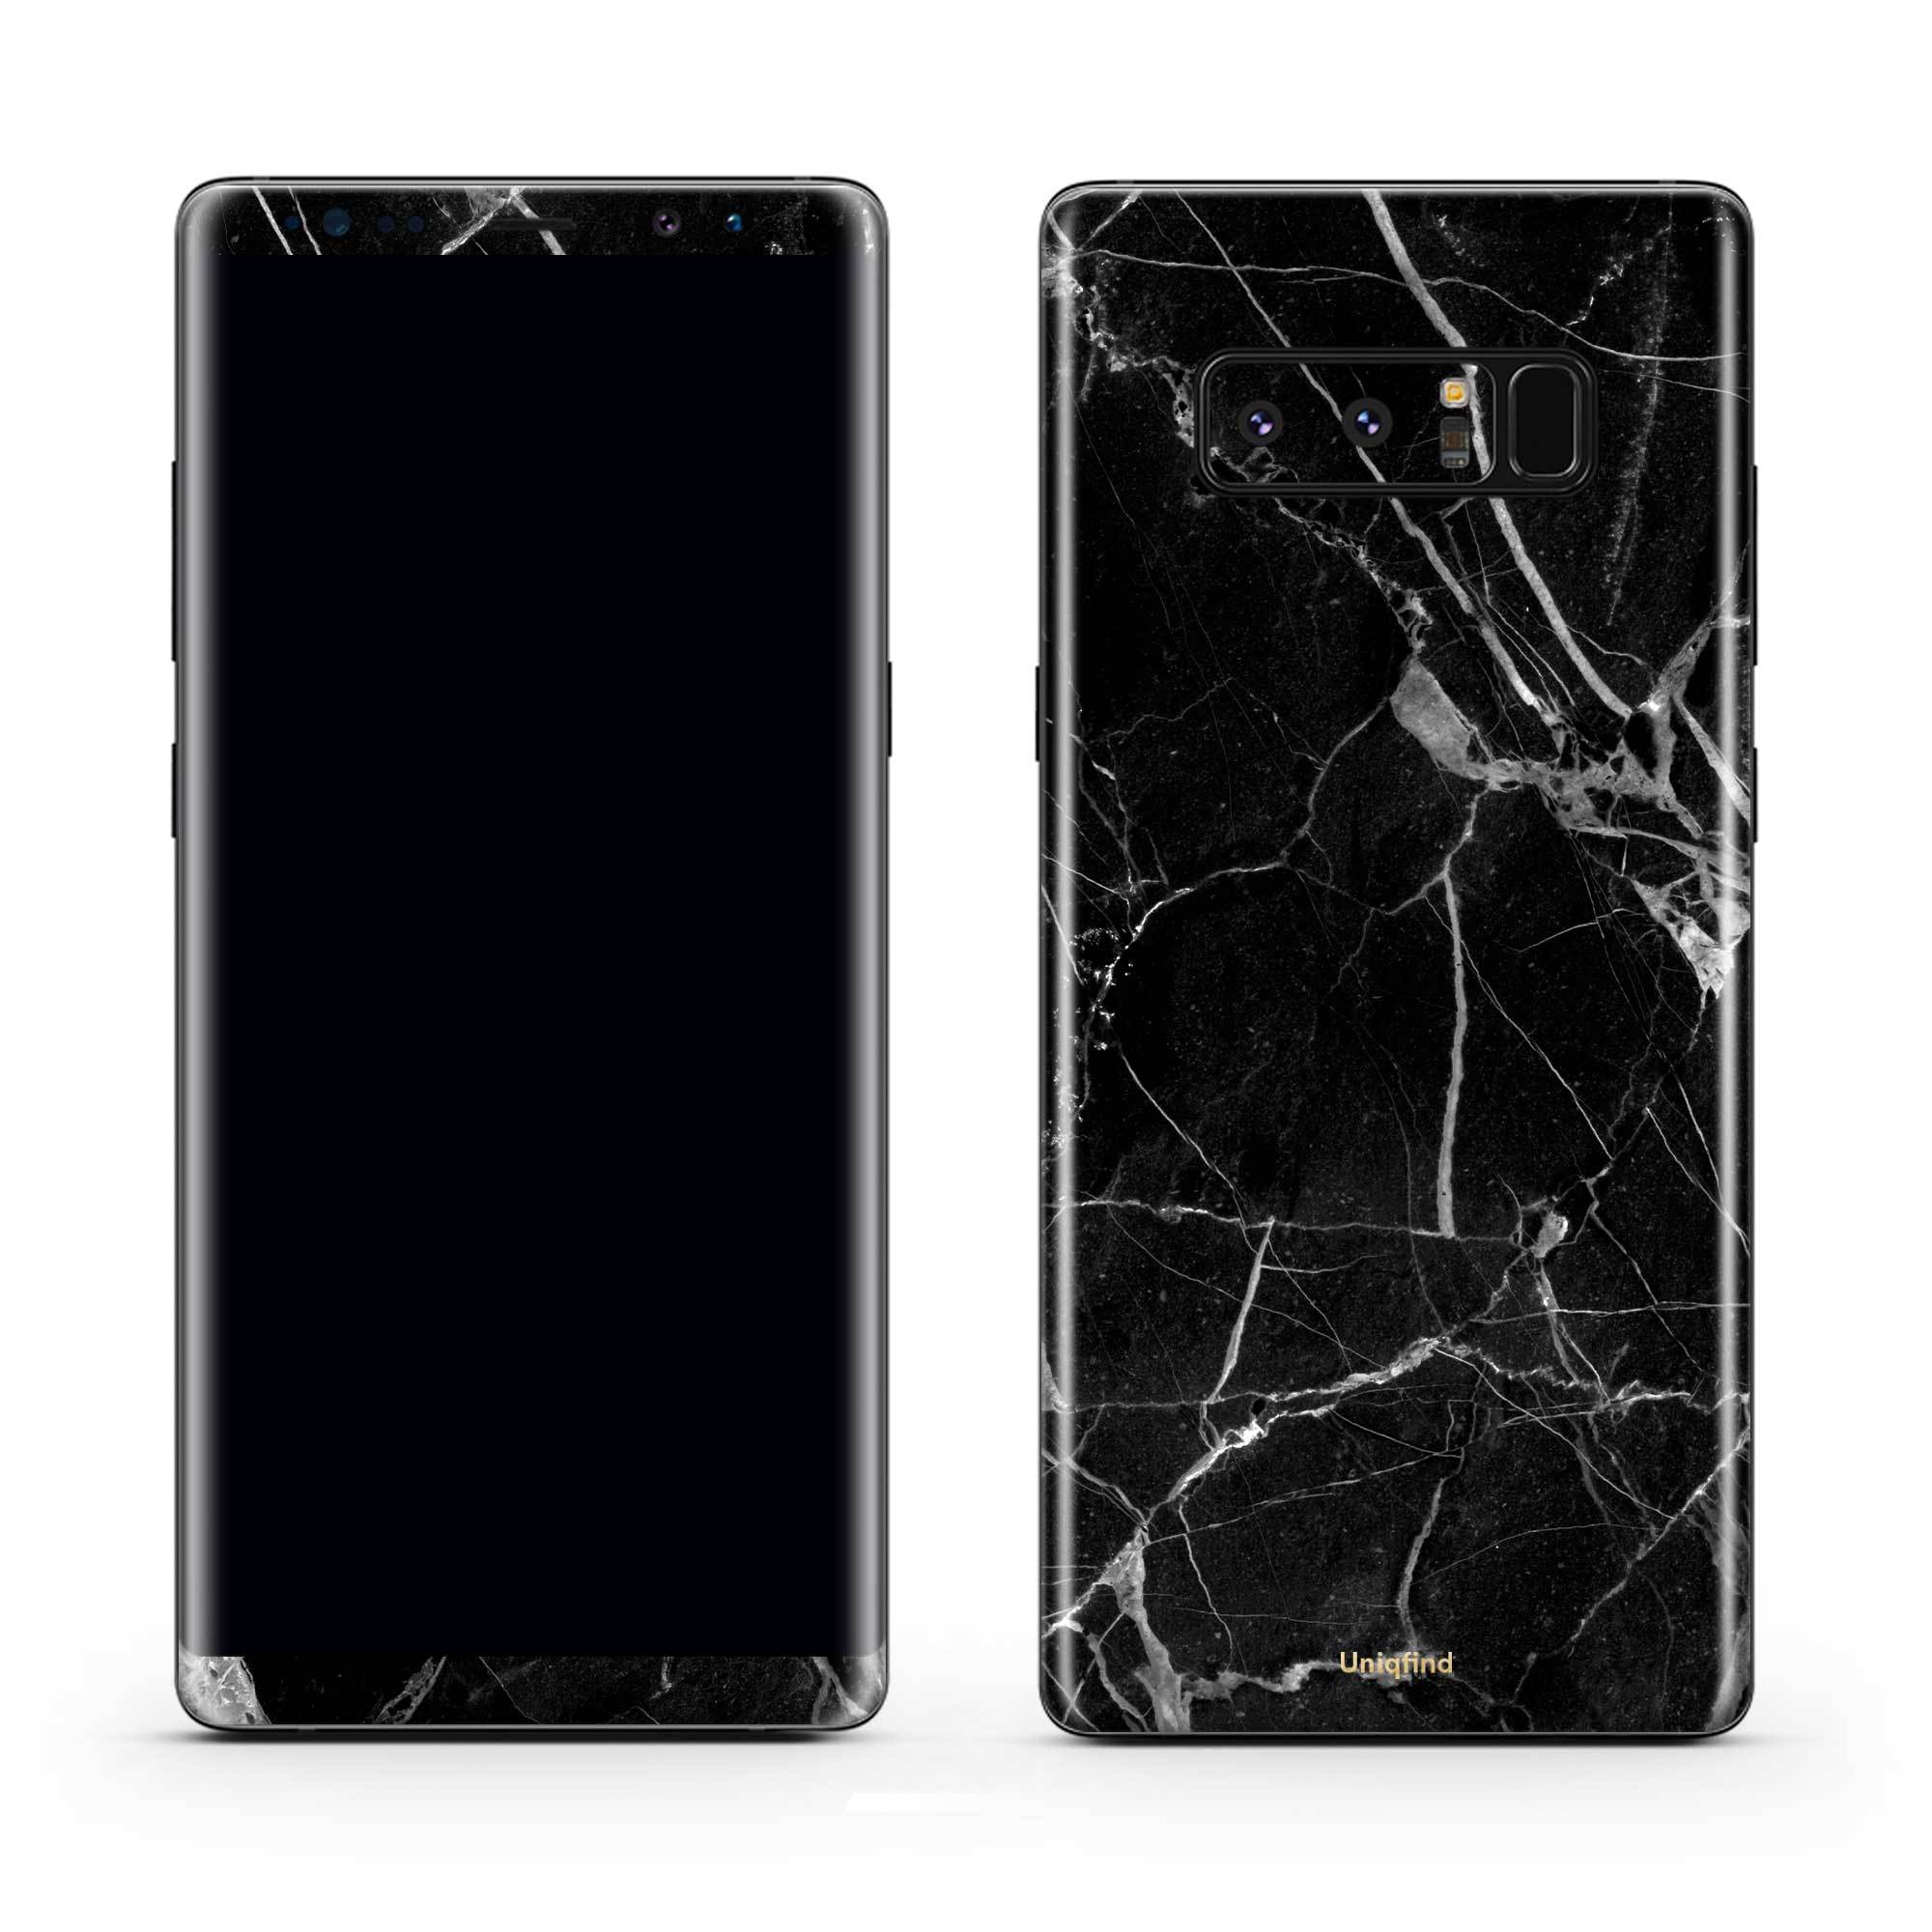 Black Hyper Marble Galaxy Note 8 Skin + Case